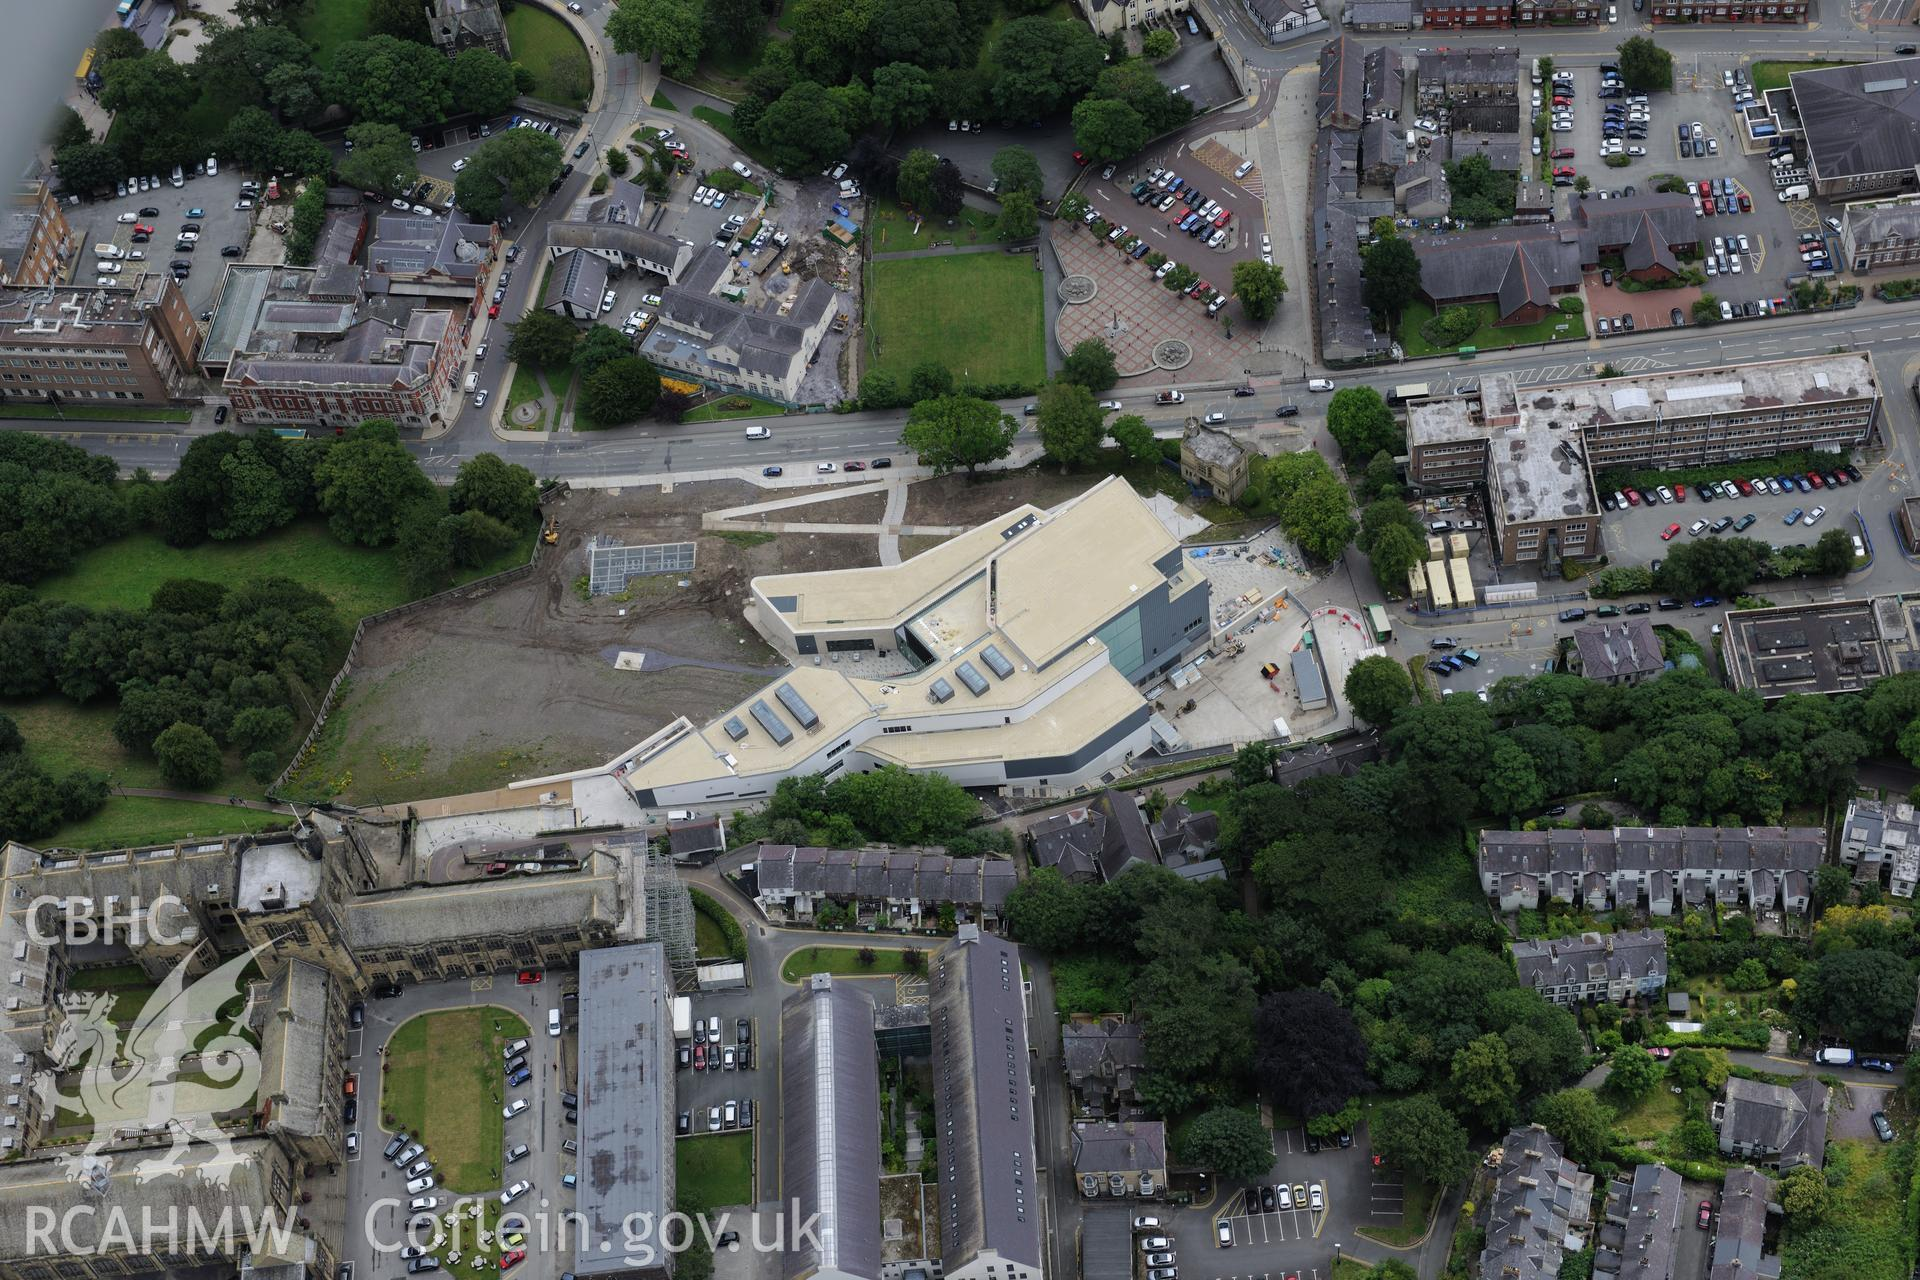 Bangor University, Theatr Gwynedd(demolished),Pontio, medieval church site, town hall, library & war memorial. Oblique aerial photograph taken during the Royal Commission's programme of archaeological aerial reconnaissance by Toby Driver on 30th July 2015.